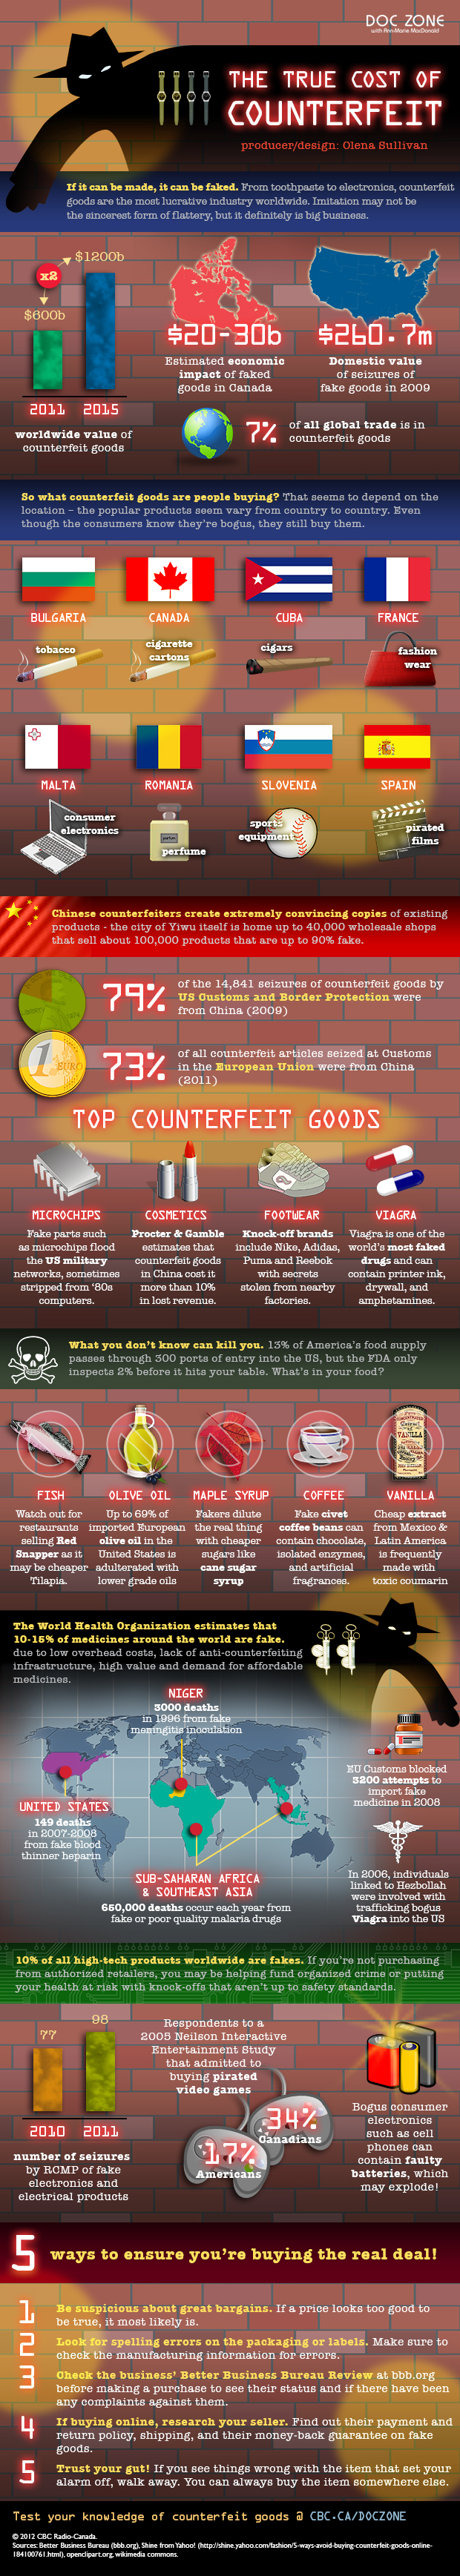 the-true-cost-of-counterfeit_50d219baee2e8